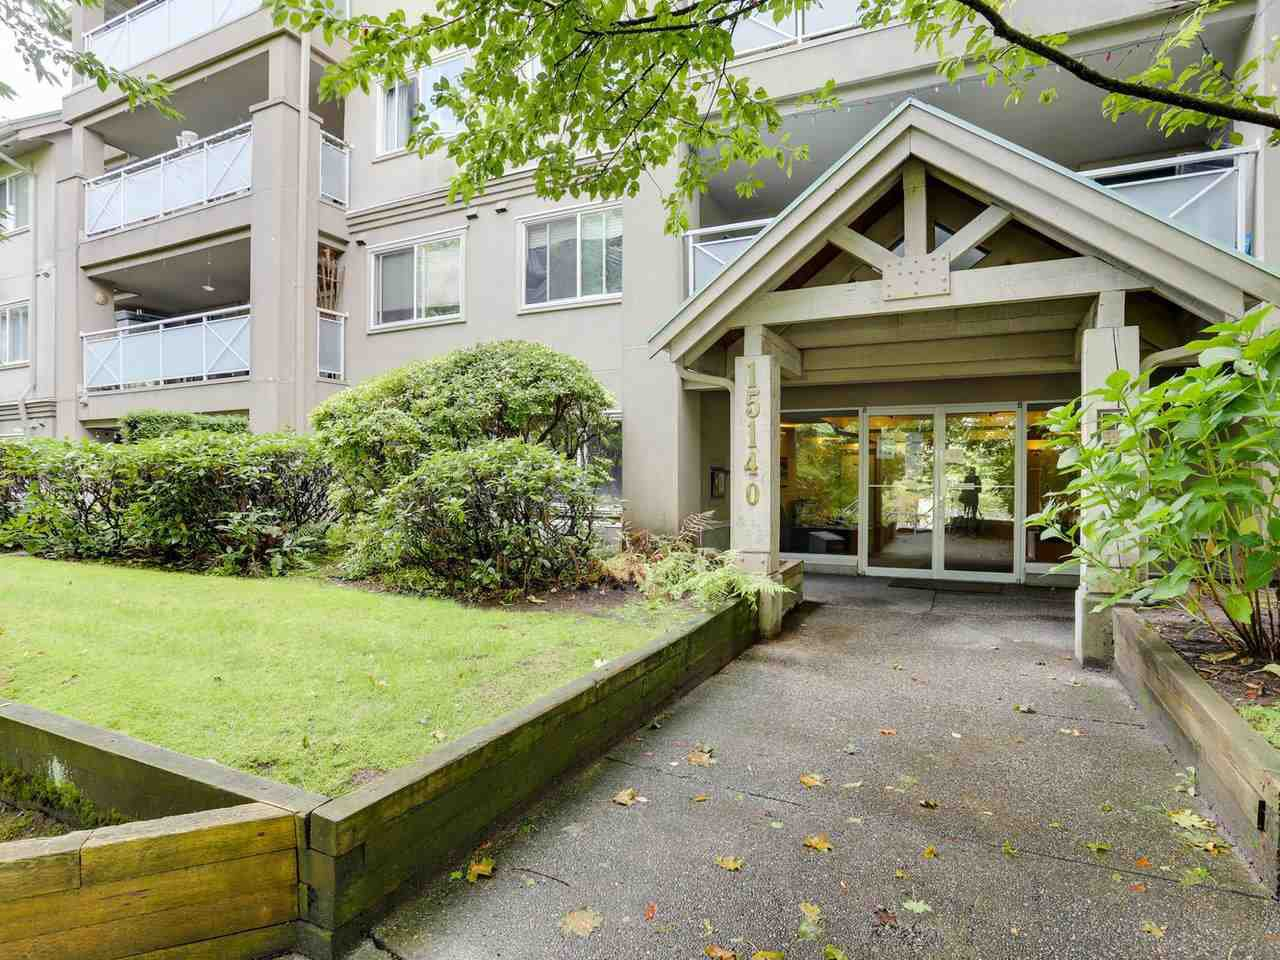 """Main Photo: 103 15140 29A Avenue in Surrey: King George Corridor Condo for sale in """"THE SANDS"""" (South Surrey White Rock)  : MLS®# R2501706"""